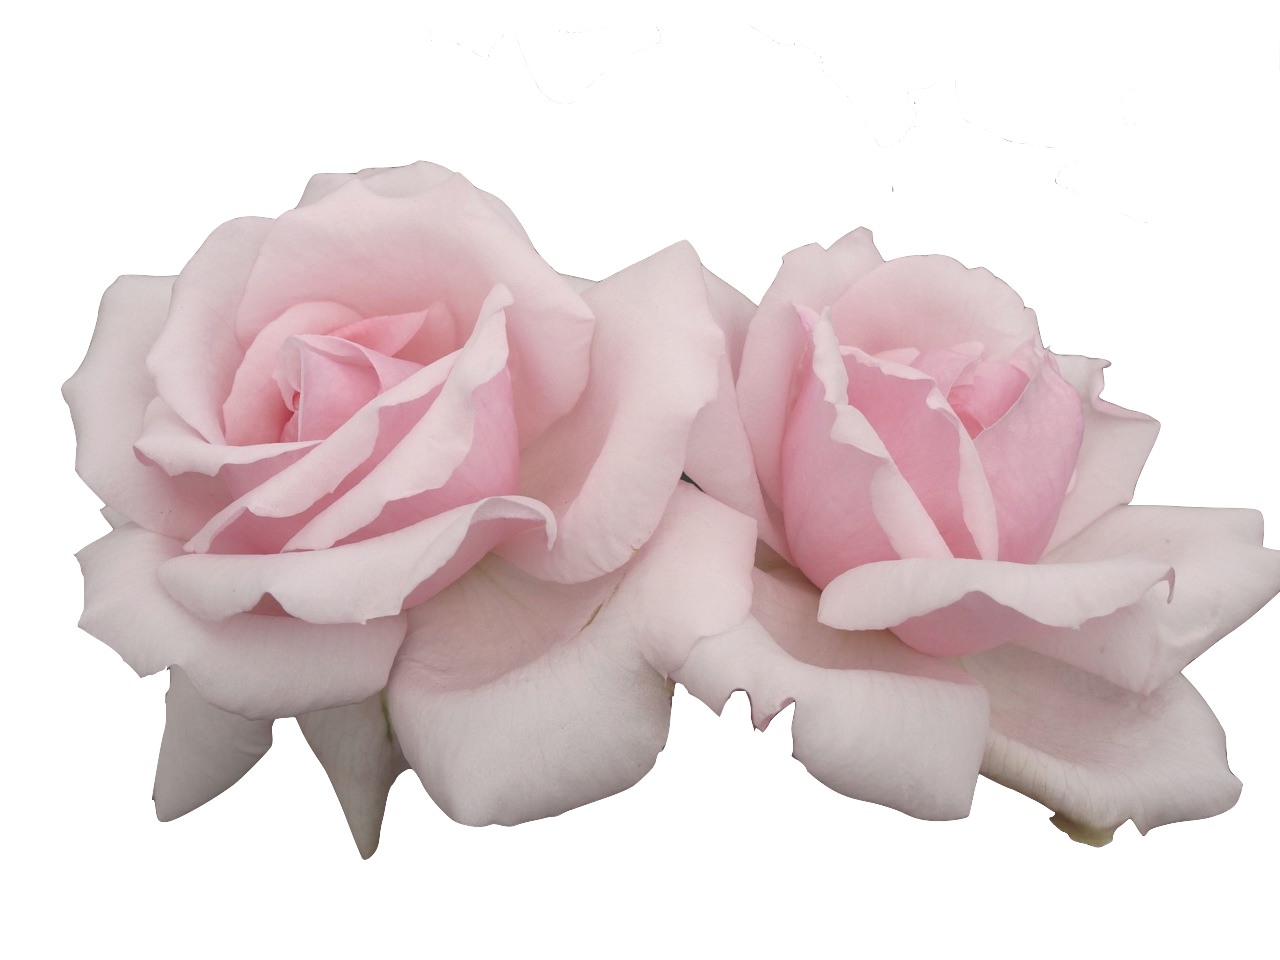 Pink Roses Transparent Flowers Pink Aesthetic Pink Roses